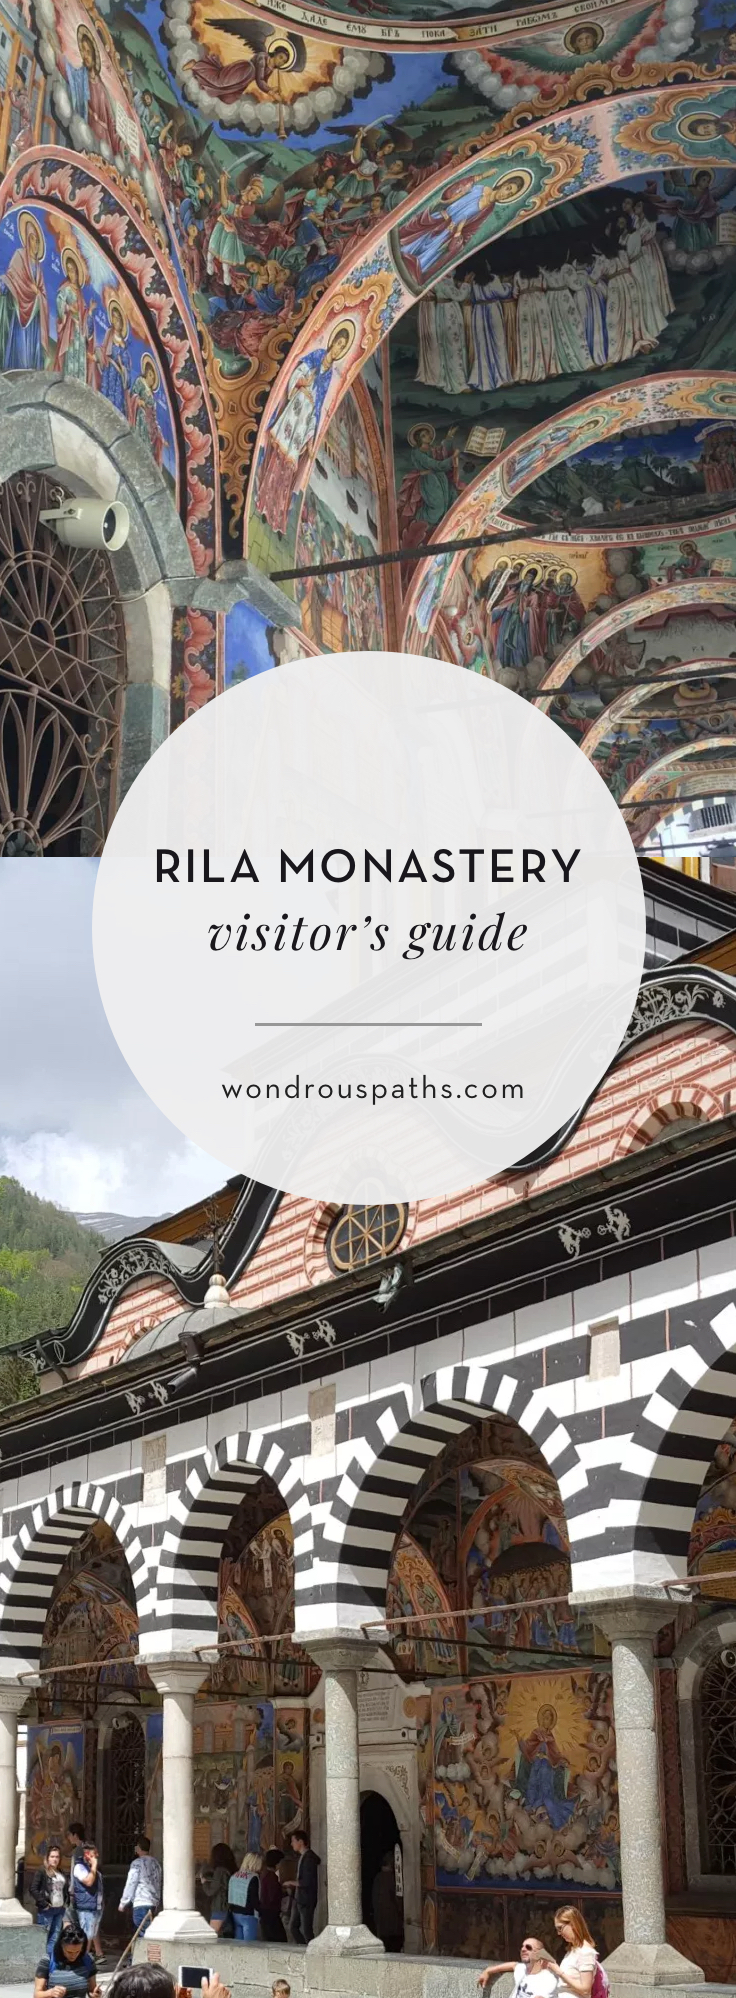 Visitor's guide to the UNESCO World Heritage site Rila Monastery in Rila, Bulgaria